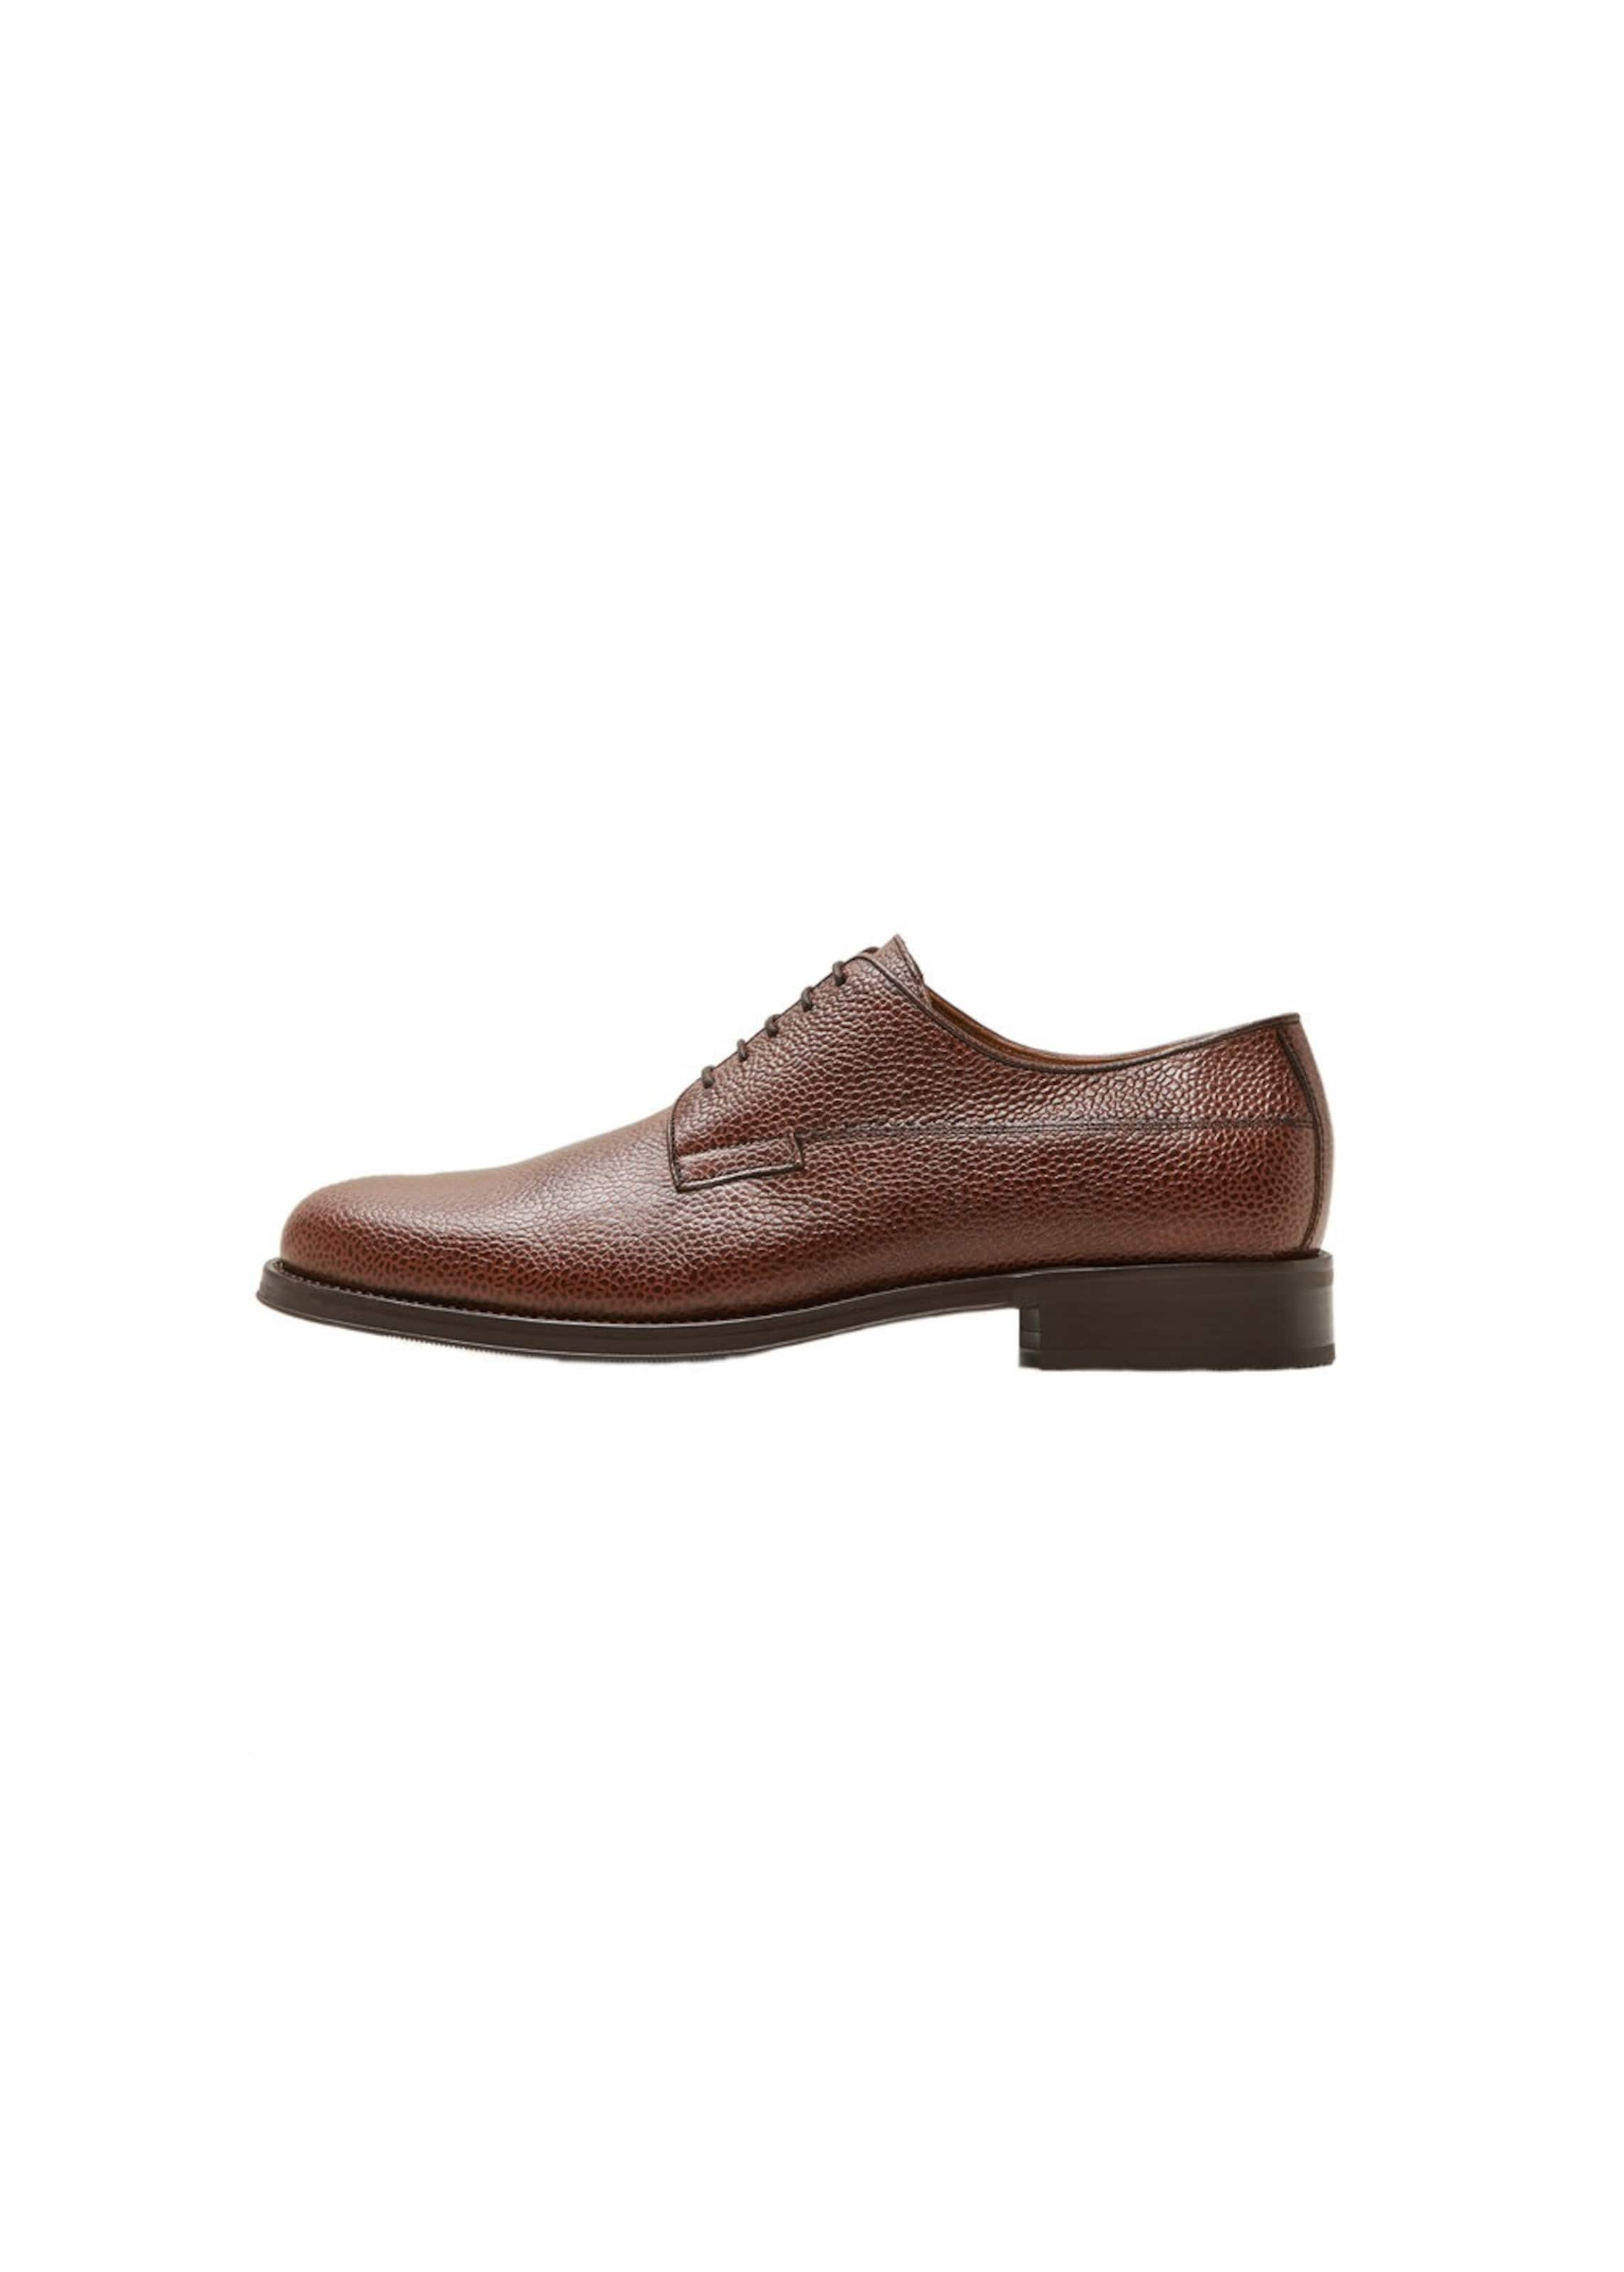 low priced 9ac6f c8329 i' Terre 'min Man Braun Mango In Schuhe 6yb7gfY